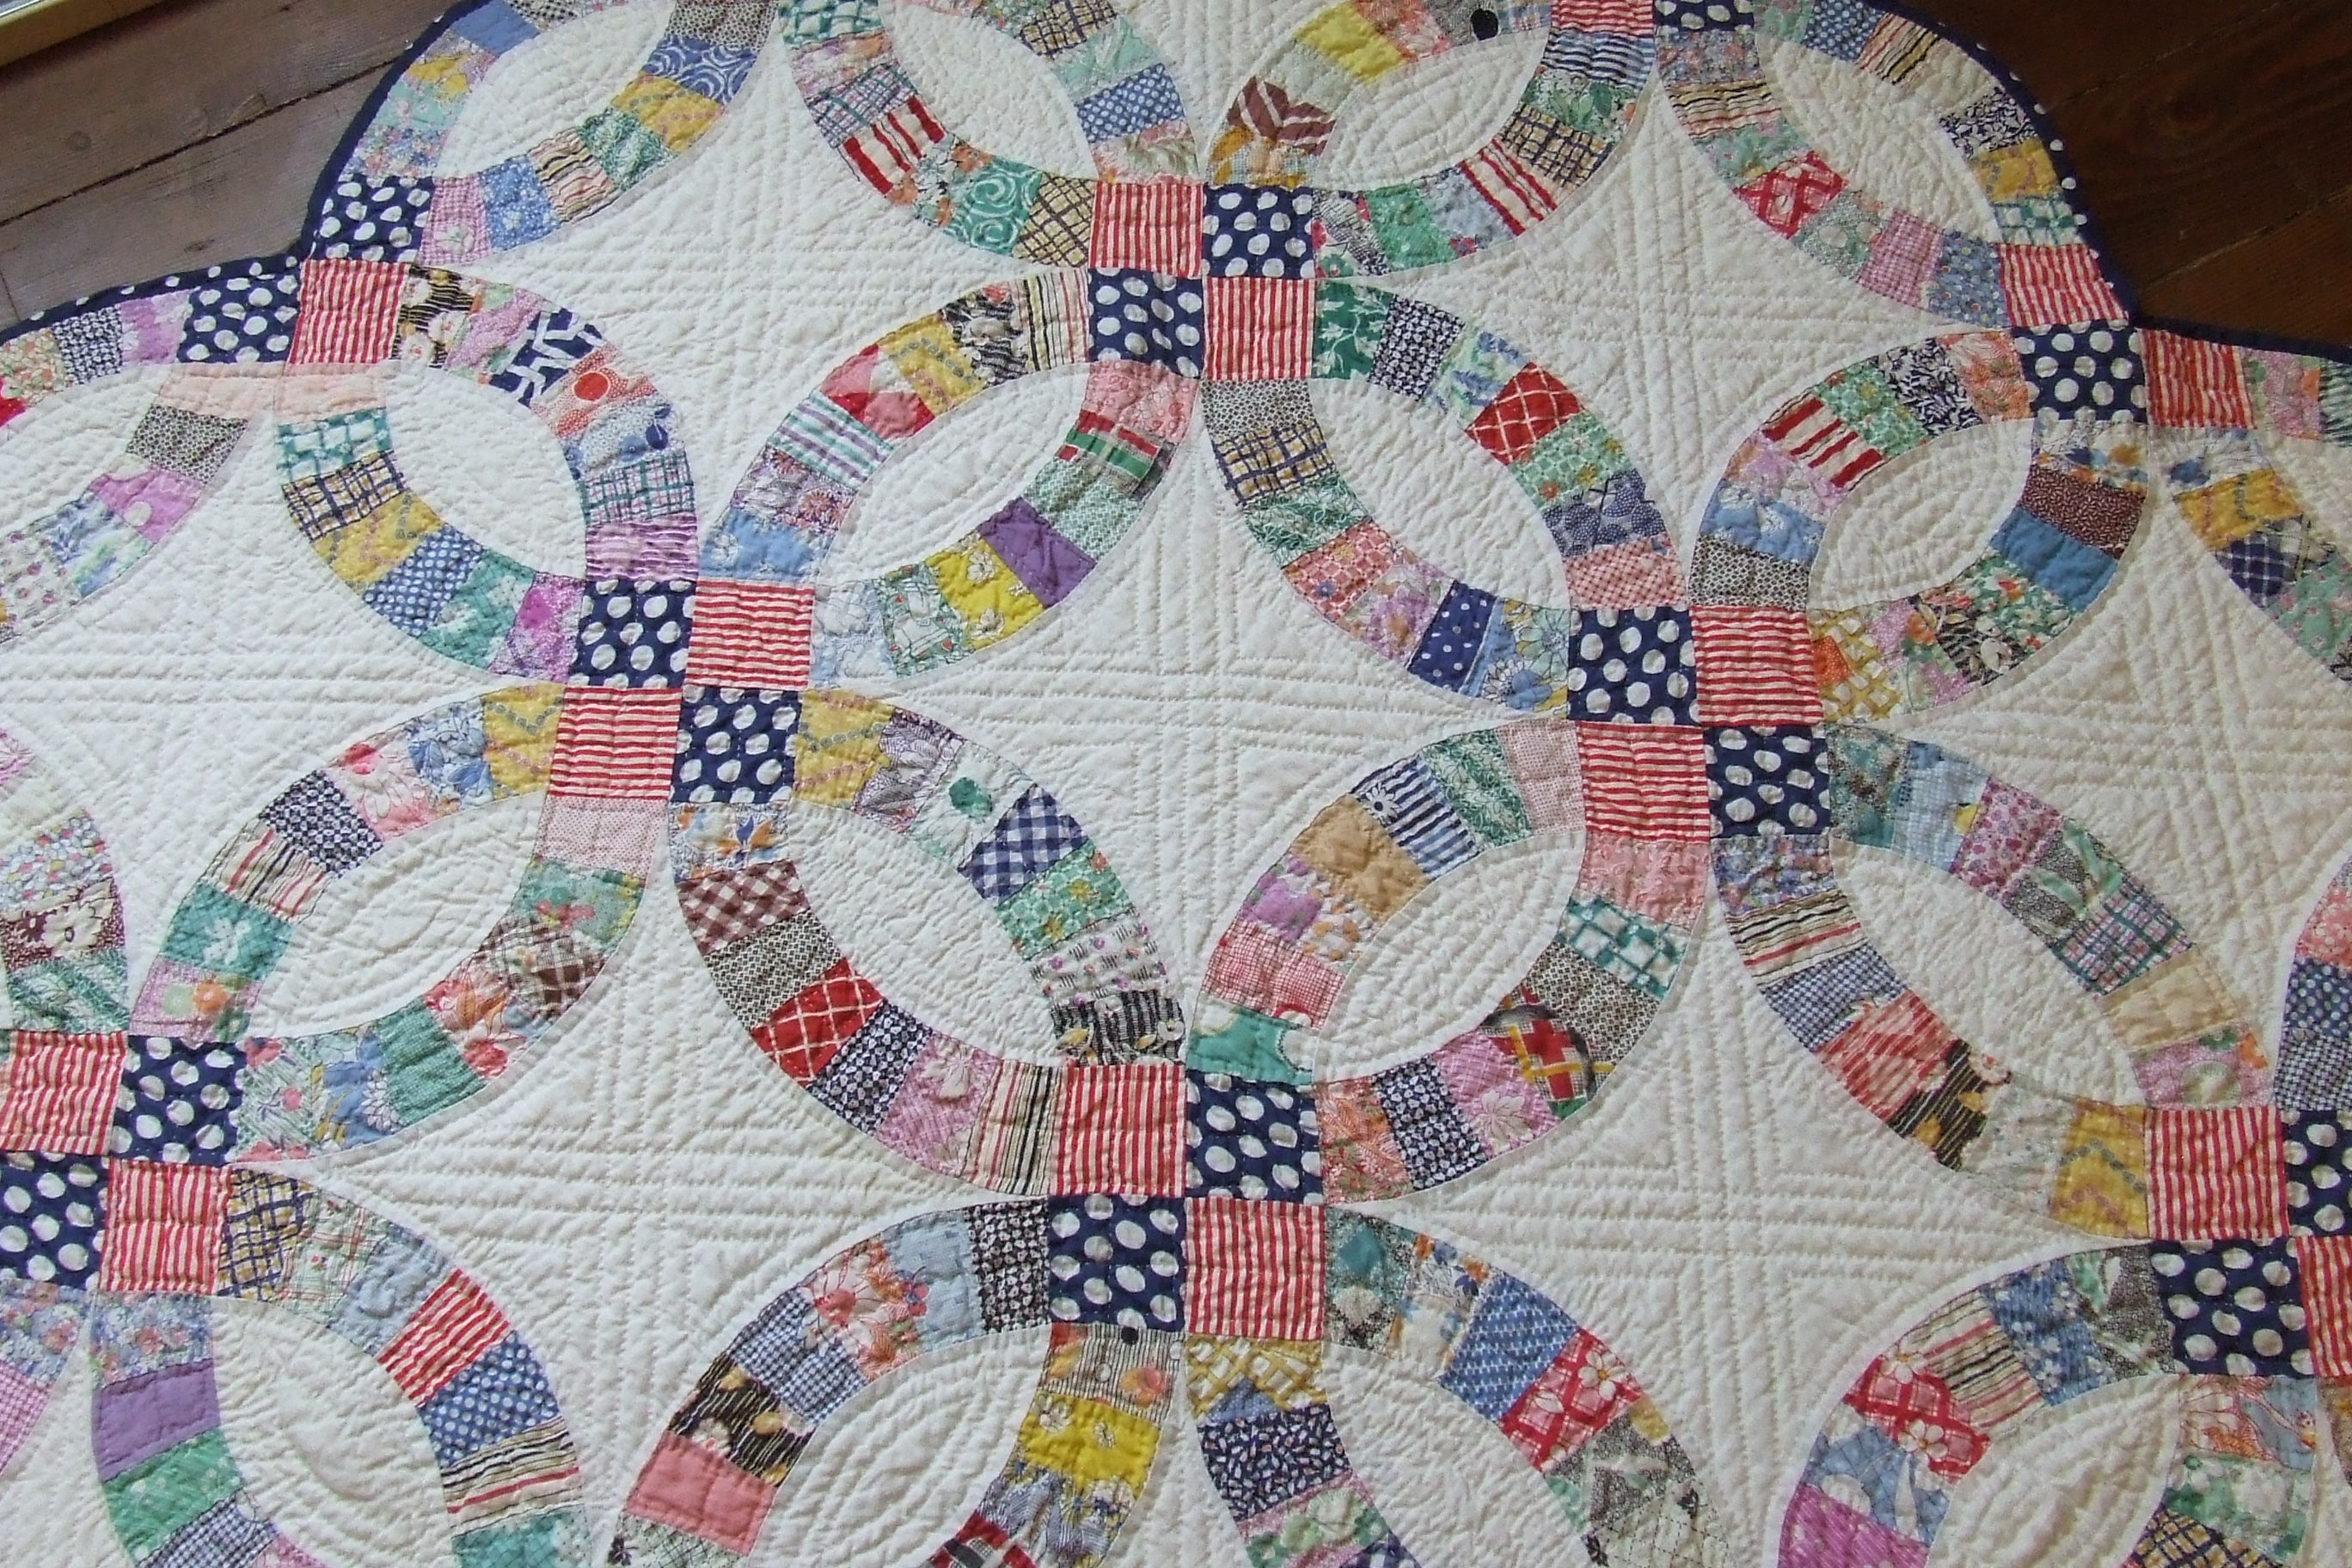 Counting Quilting Stitches Tim Latimer Quilts Etc